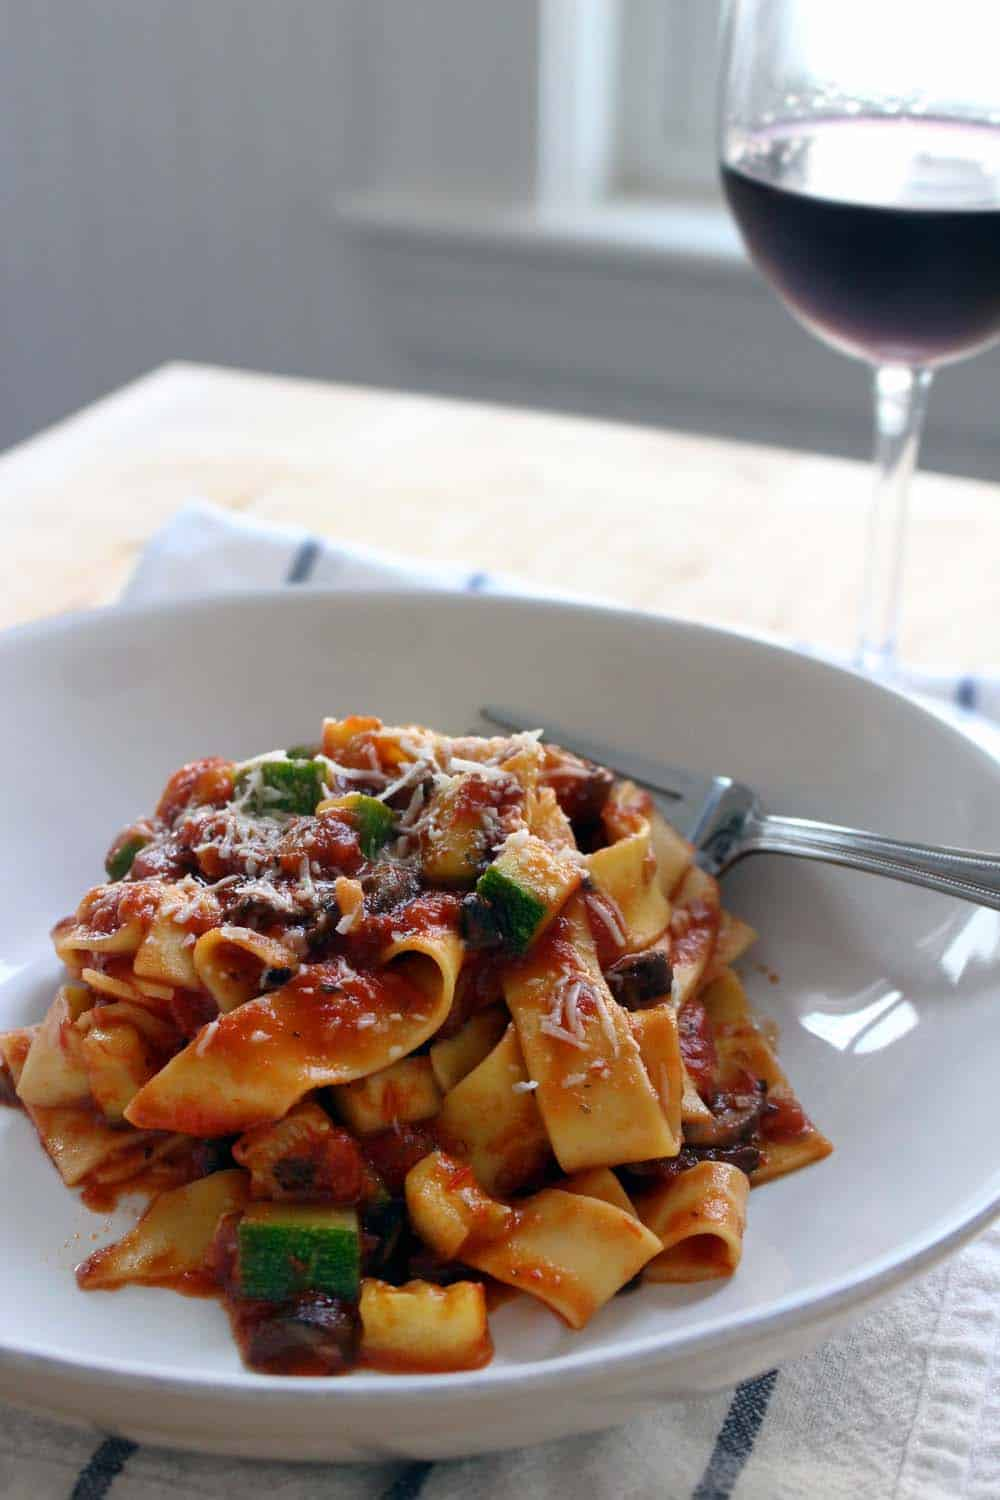 Pappardelle with Zucchini, Mushrooms, and Marinara